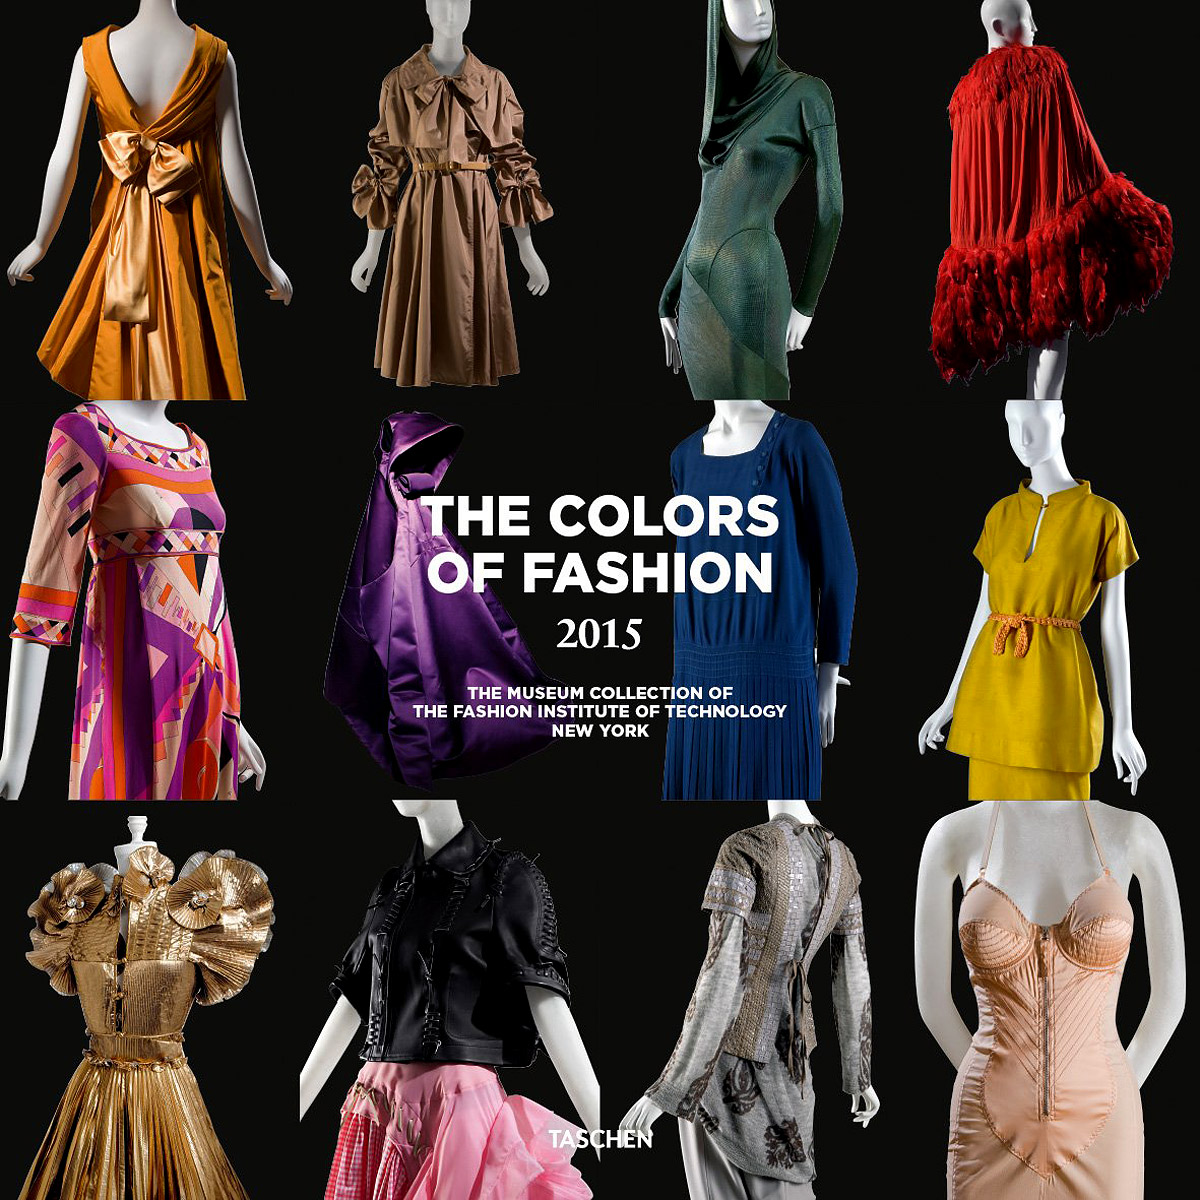 The Colors of Fashion 2015: The Museum Collection of the Fashion Institute of Technology New York in autumn the new style of the leather face of the thick bottom of the shoe fashion of many colors